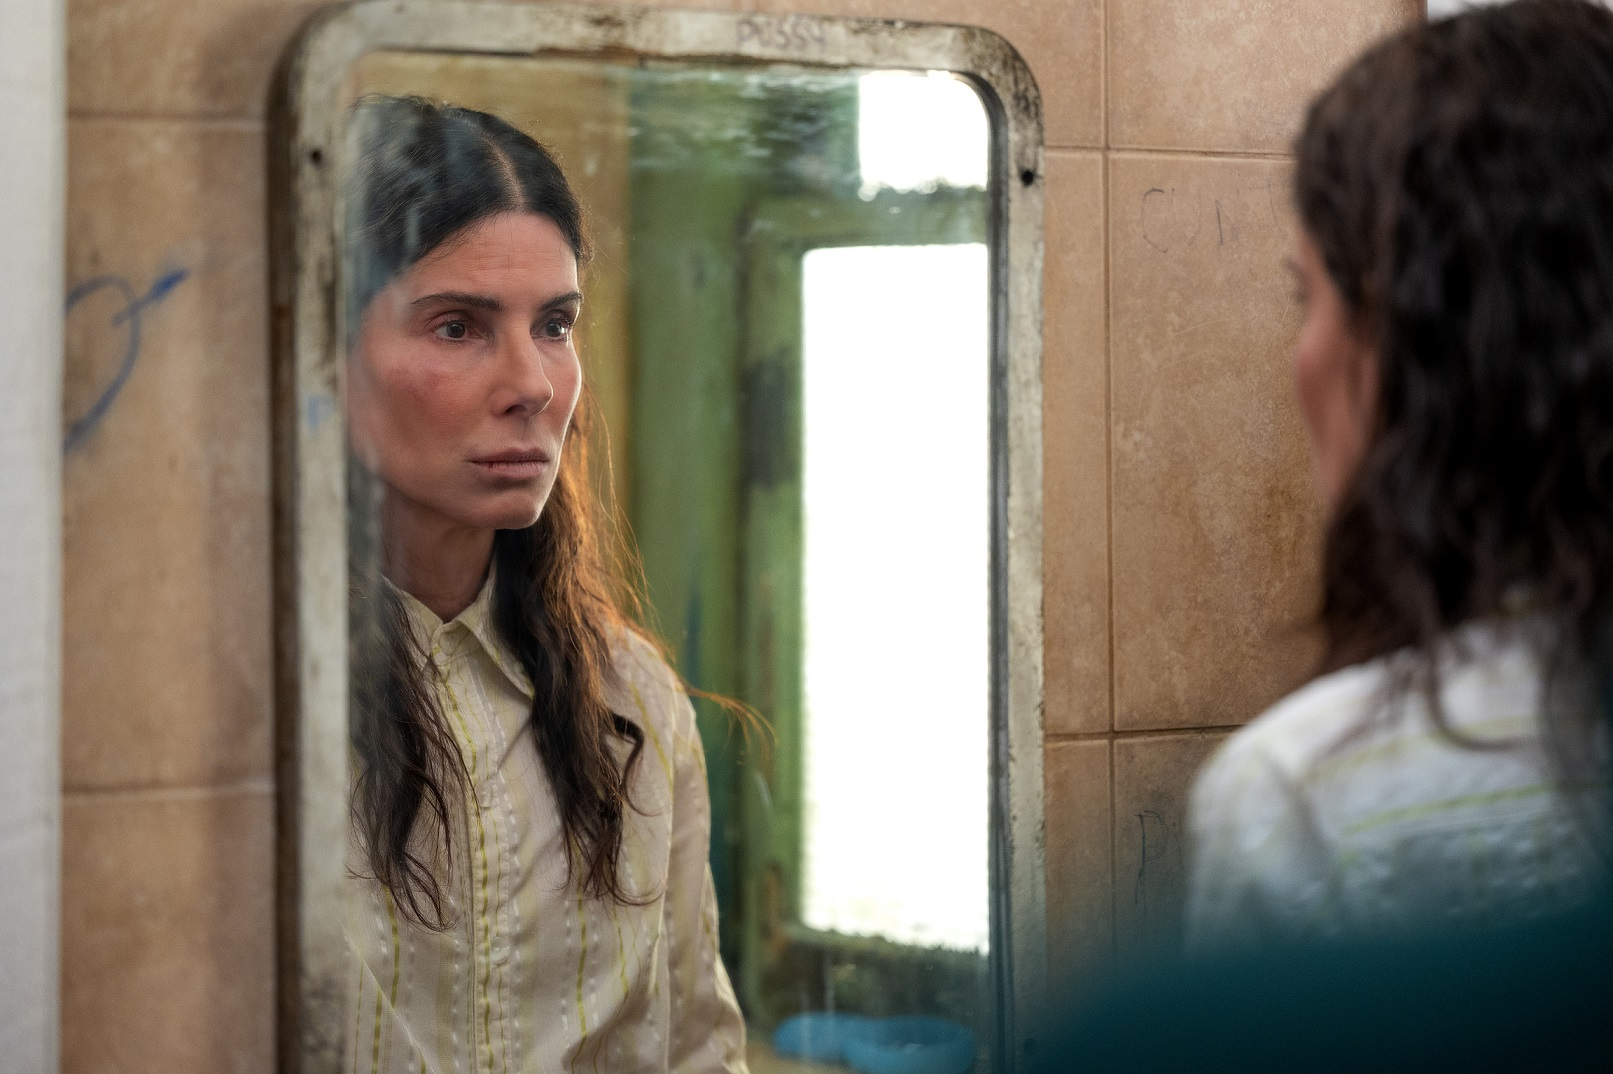 """Trailer Watch: Sandra Bullock Fights for Her Sister & Redemption in Nora Fingscheidt's """"The Unforgivable"""""""